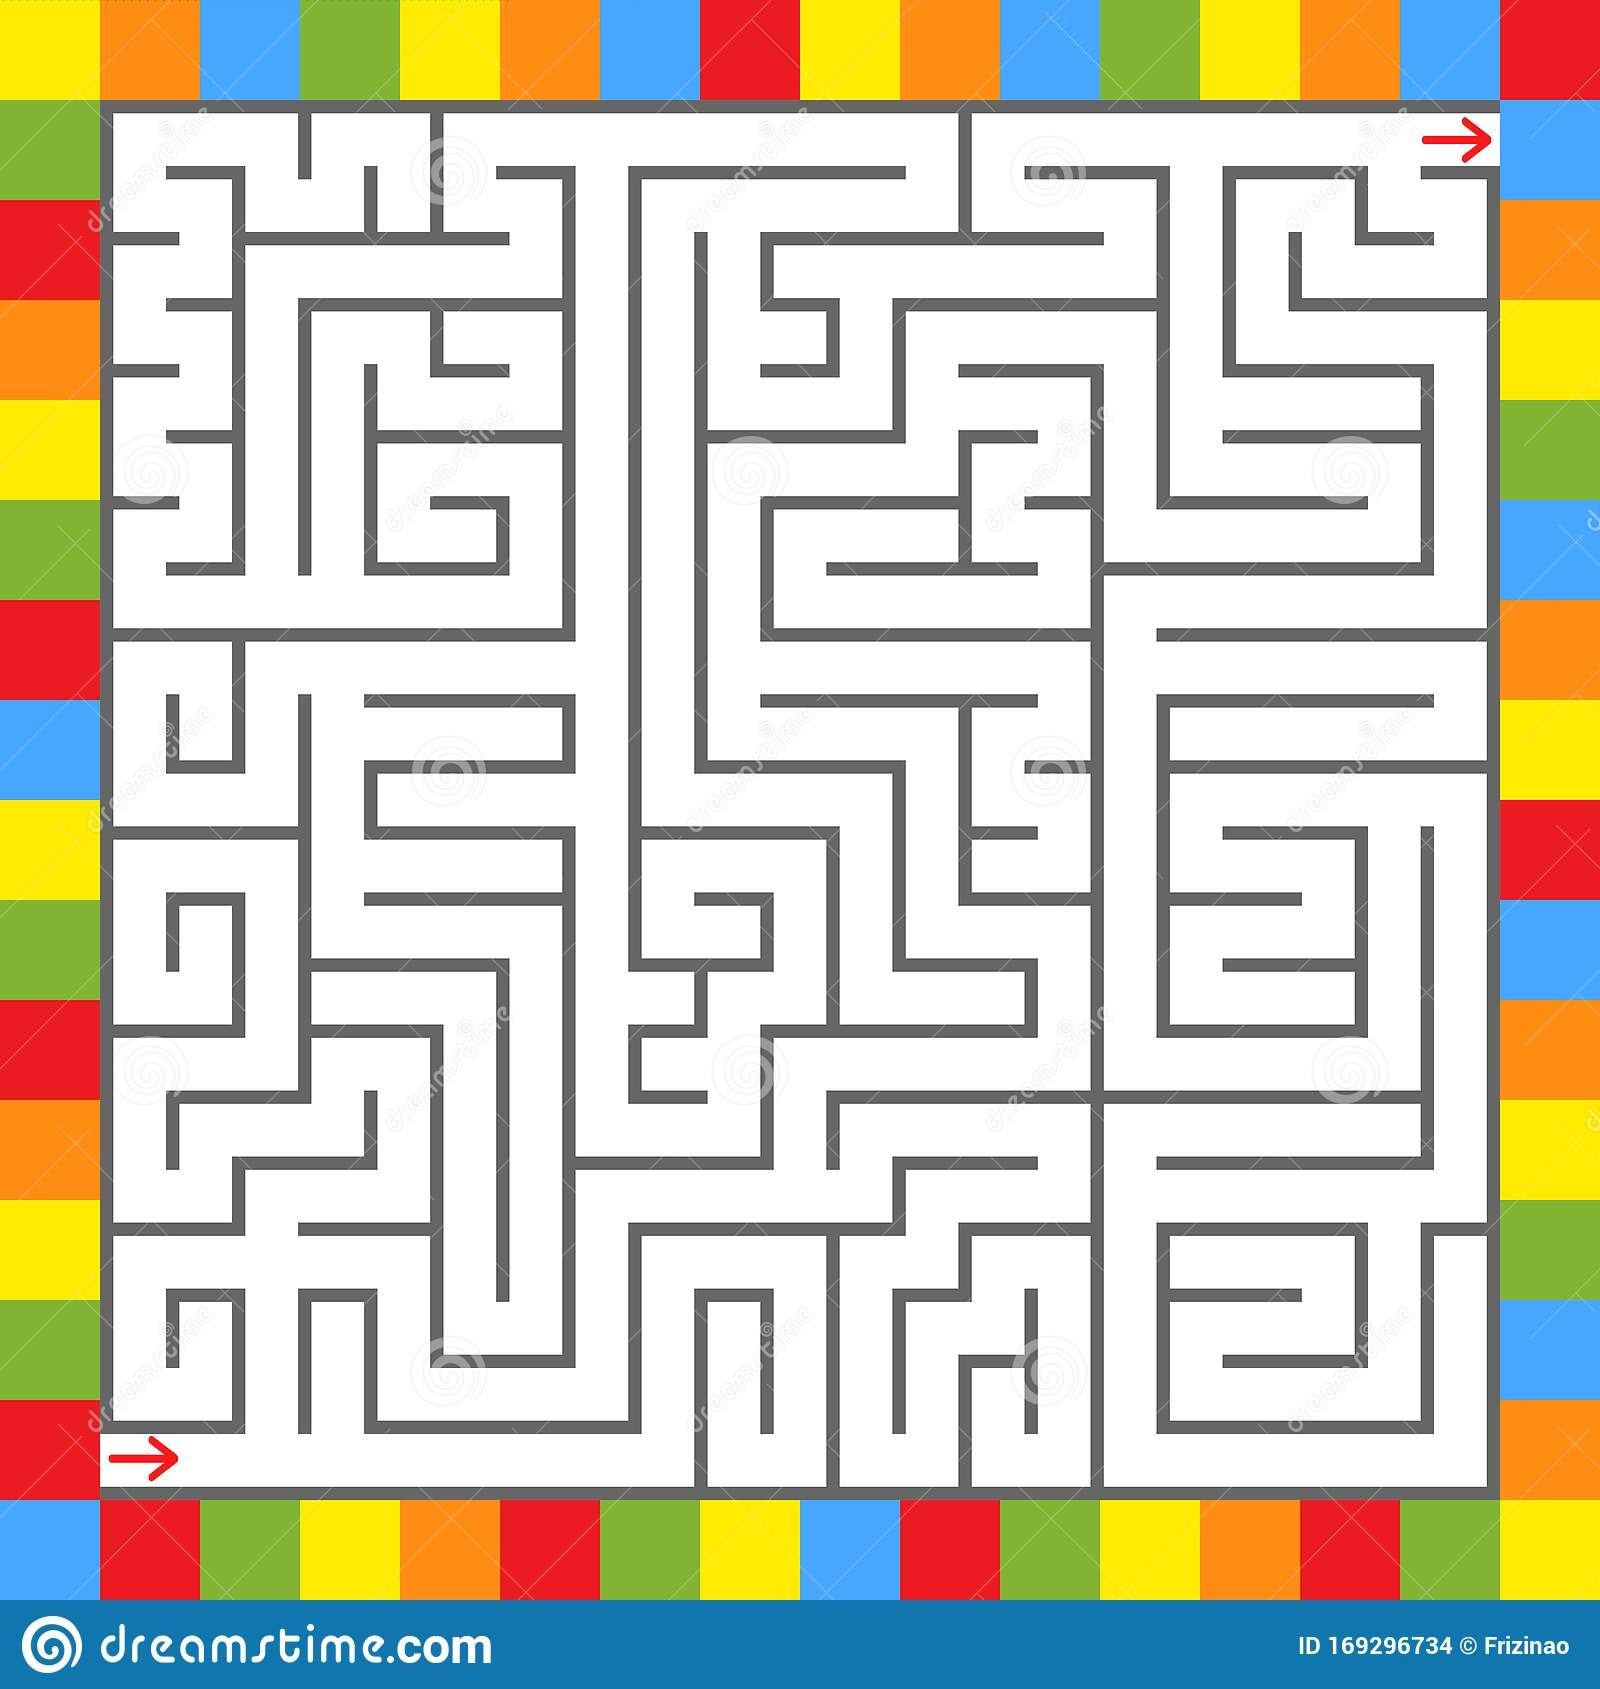 Square Color Labyrinth An Interesting Game For Children Simple Flat Vector Illustration Isolated On White Background Stock Vector Illustration Of Color Puzzle 169296734